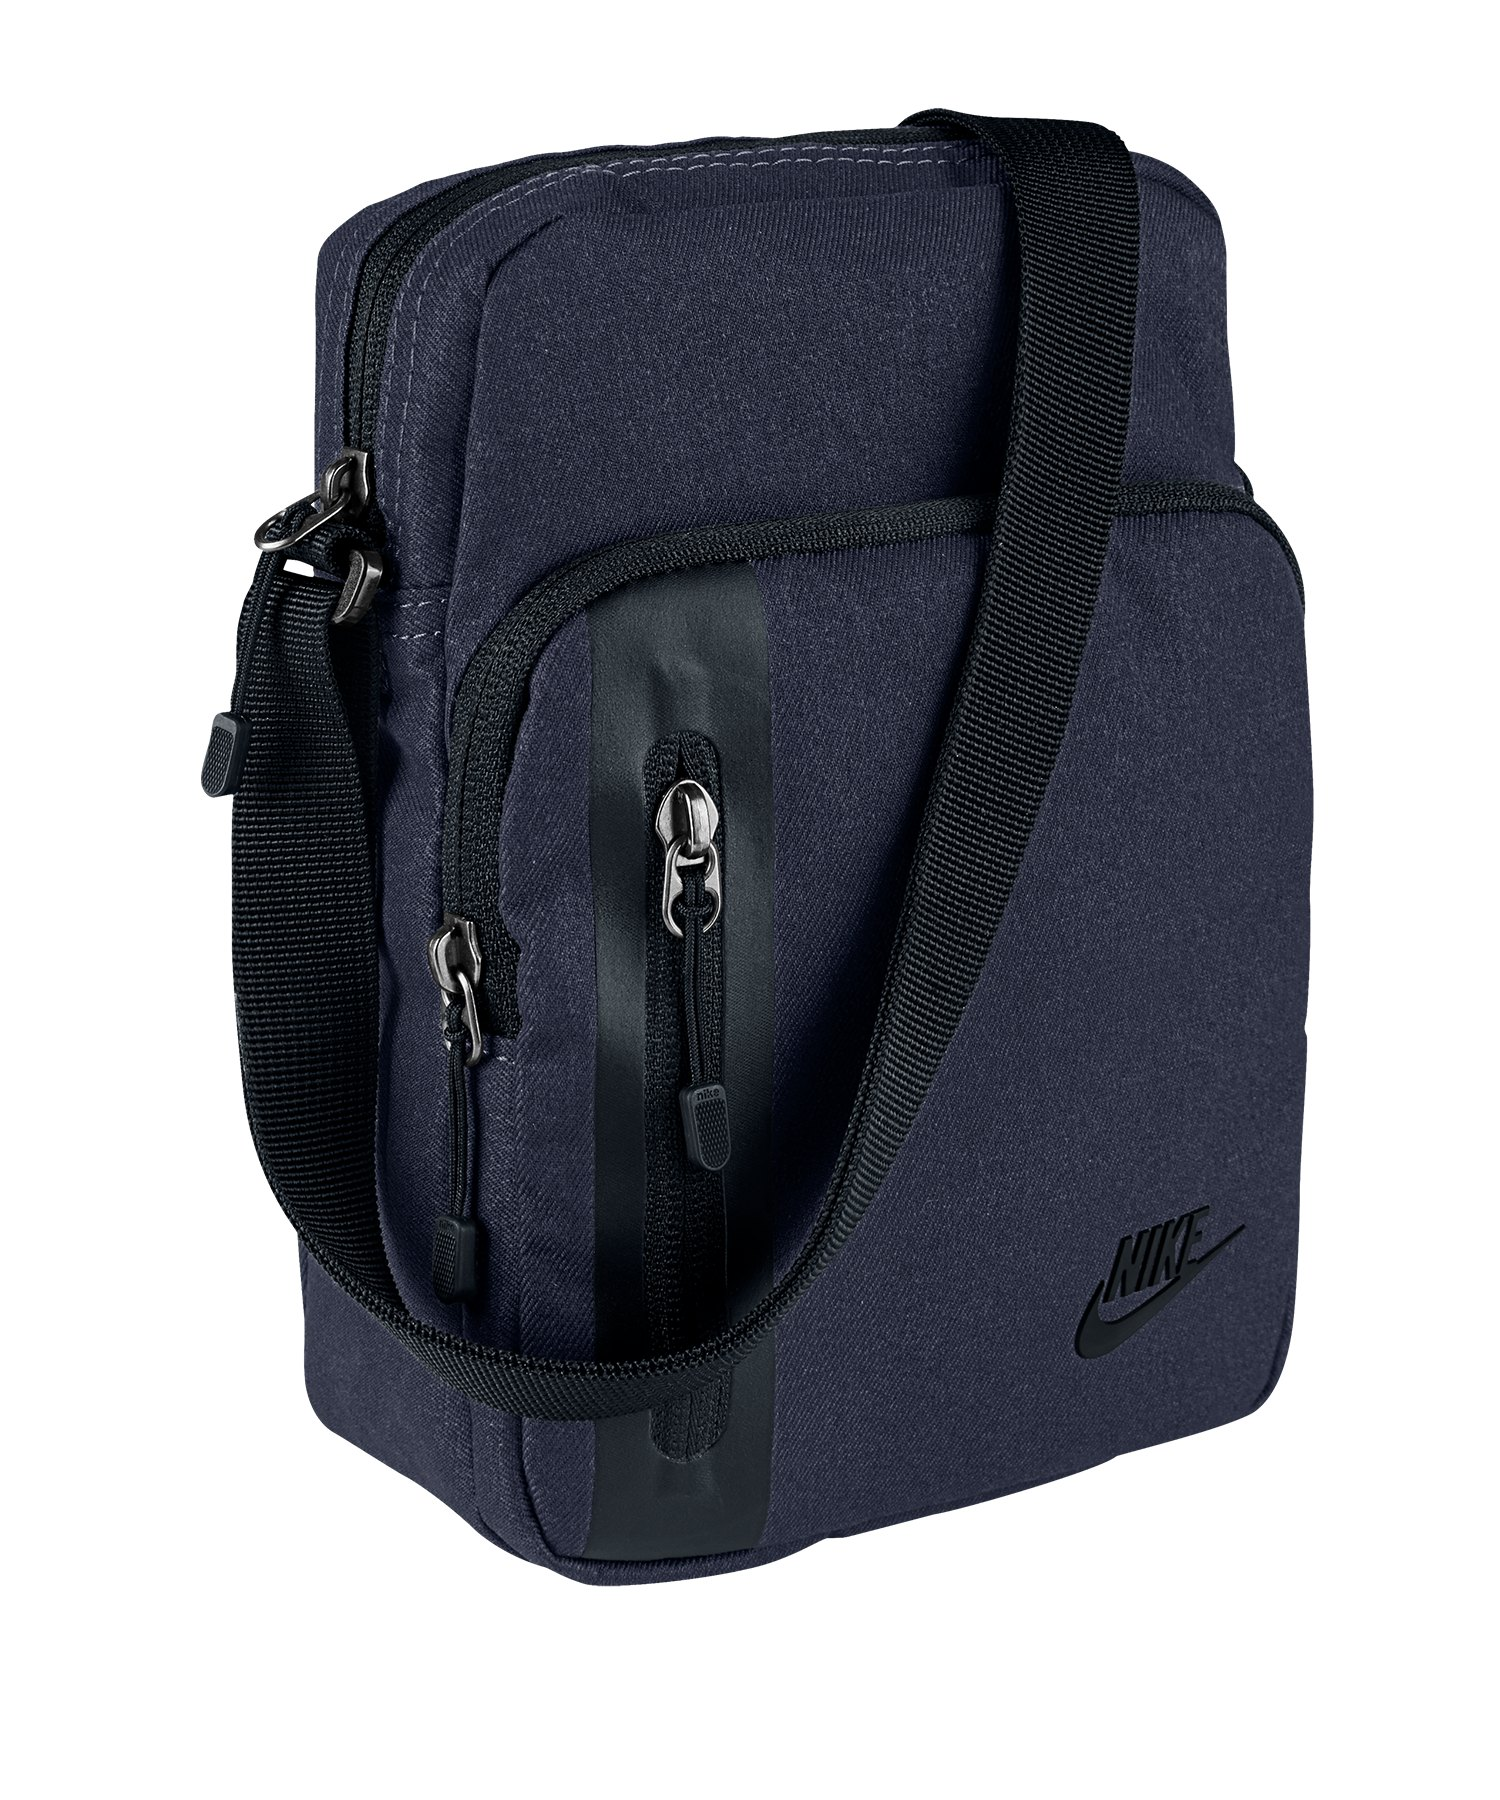 Nike Core Small Items 3.0 Bag Tasche Blau F451 - blau